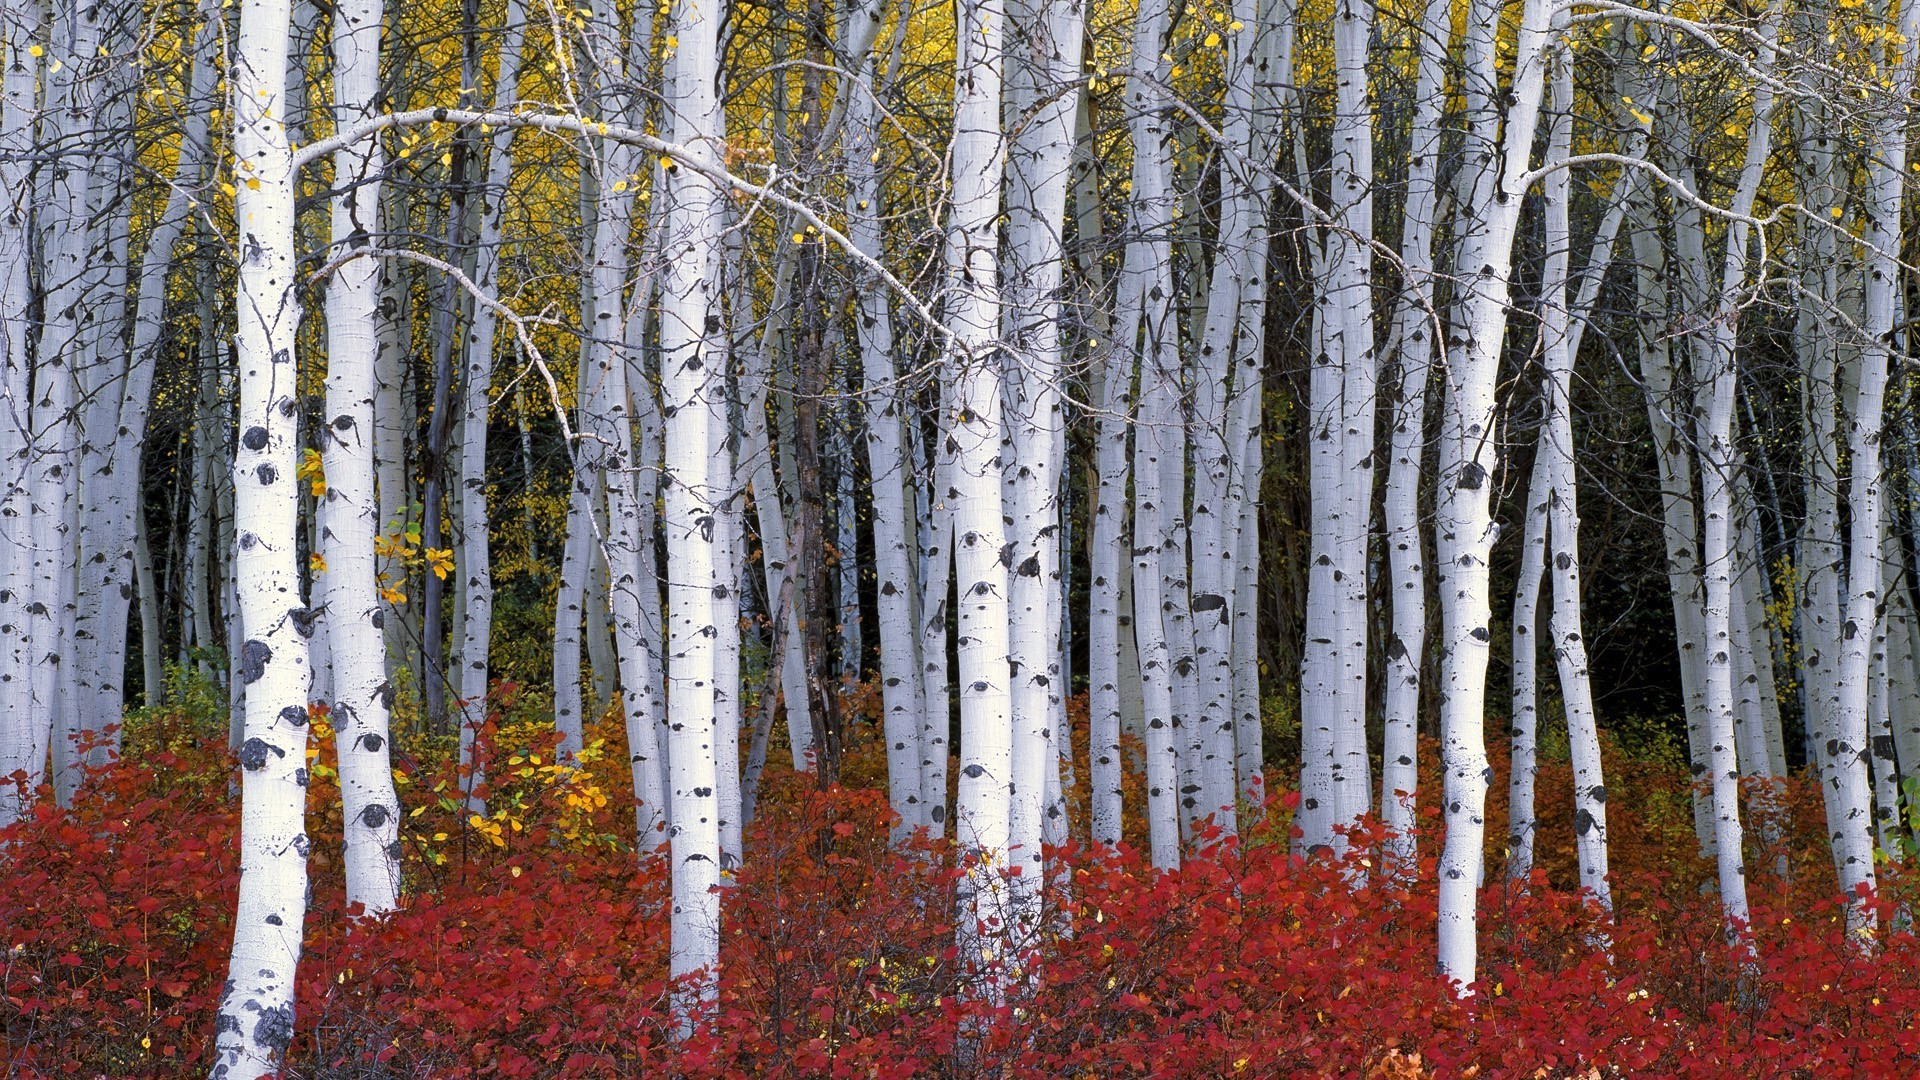 Res: 1920x1080, Birch Forest Wallpaper Hd For Pc Nature Wood Trees Leaves Branch Fall